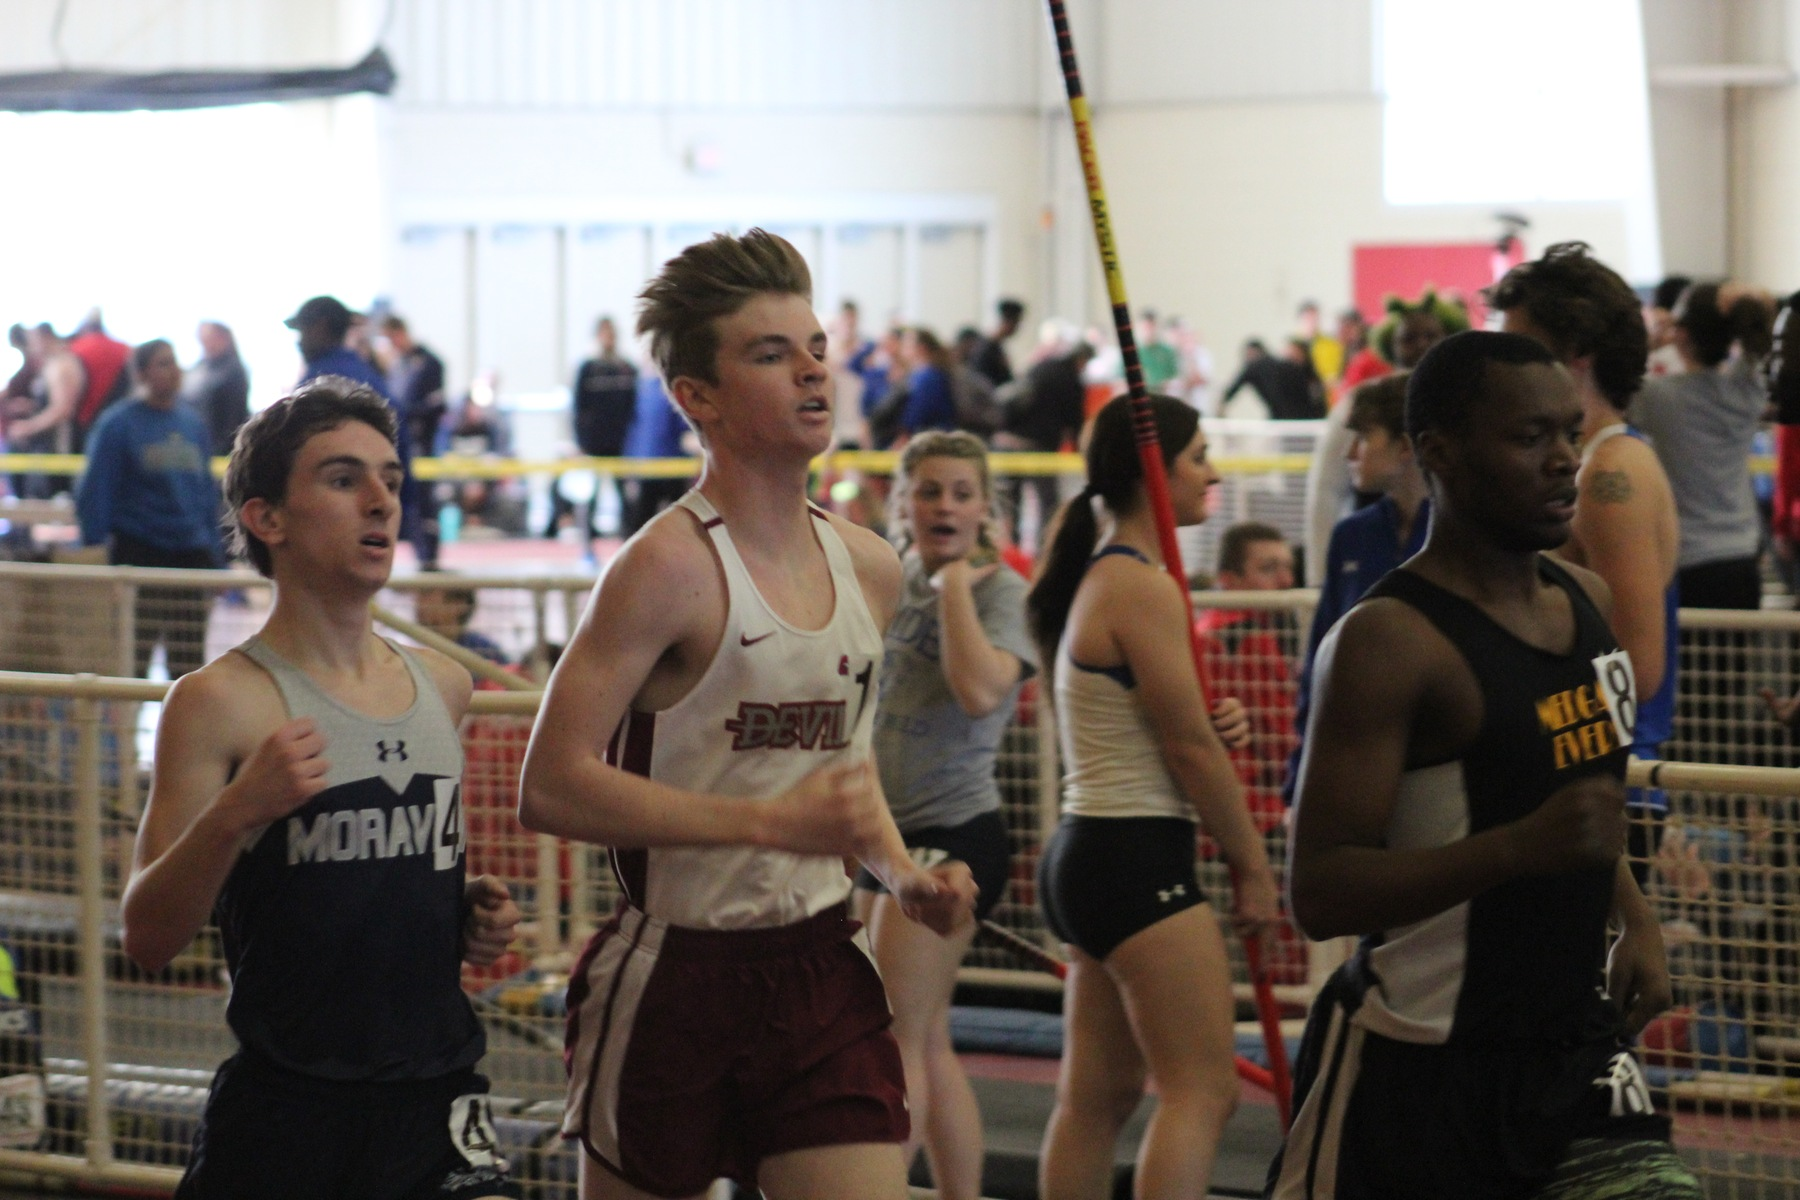 Three Devils Run Collegiate Bests; Men's Track and Field Closes Winter Season at Armory Last Chance Meet